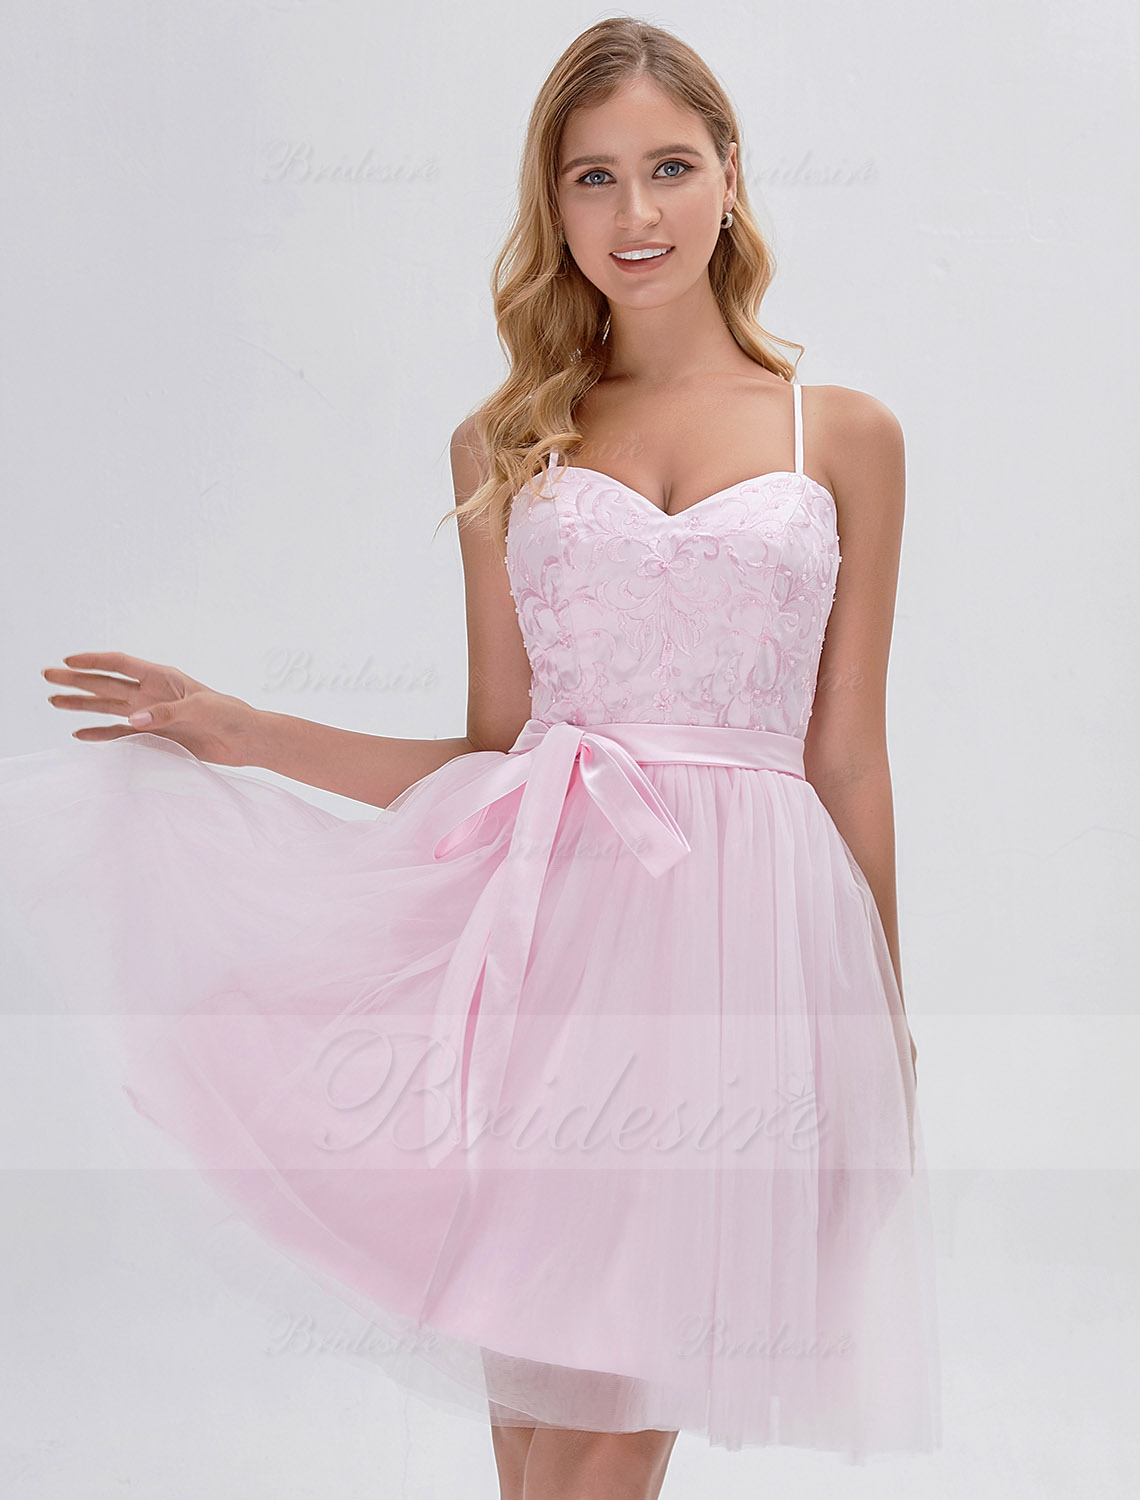 A-line Sweetheart Short/Mini Prom Dress